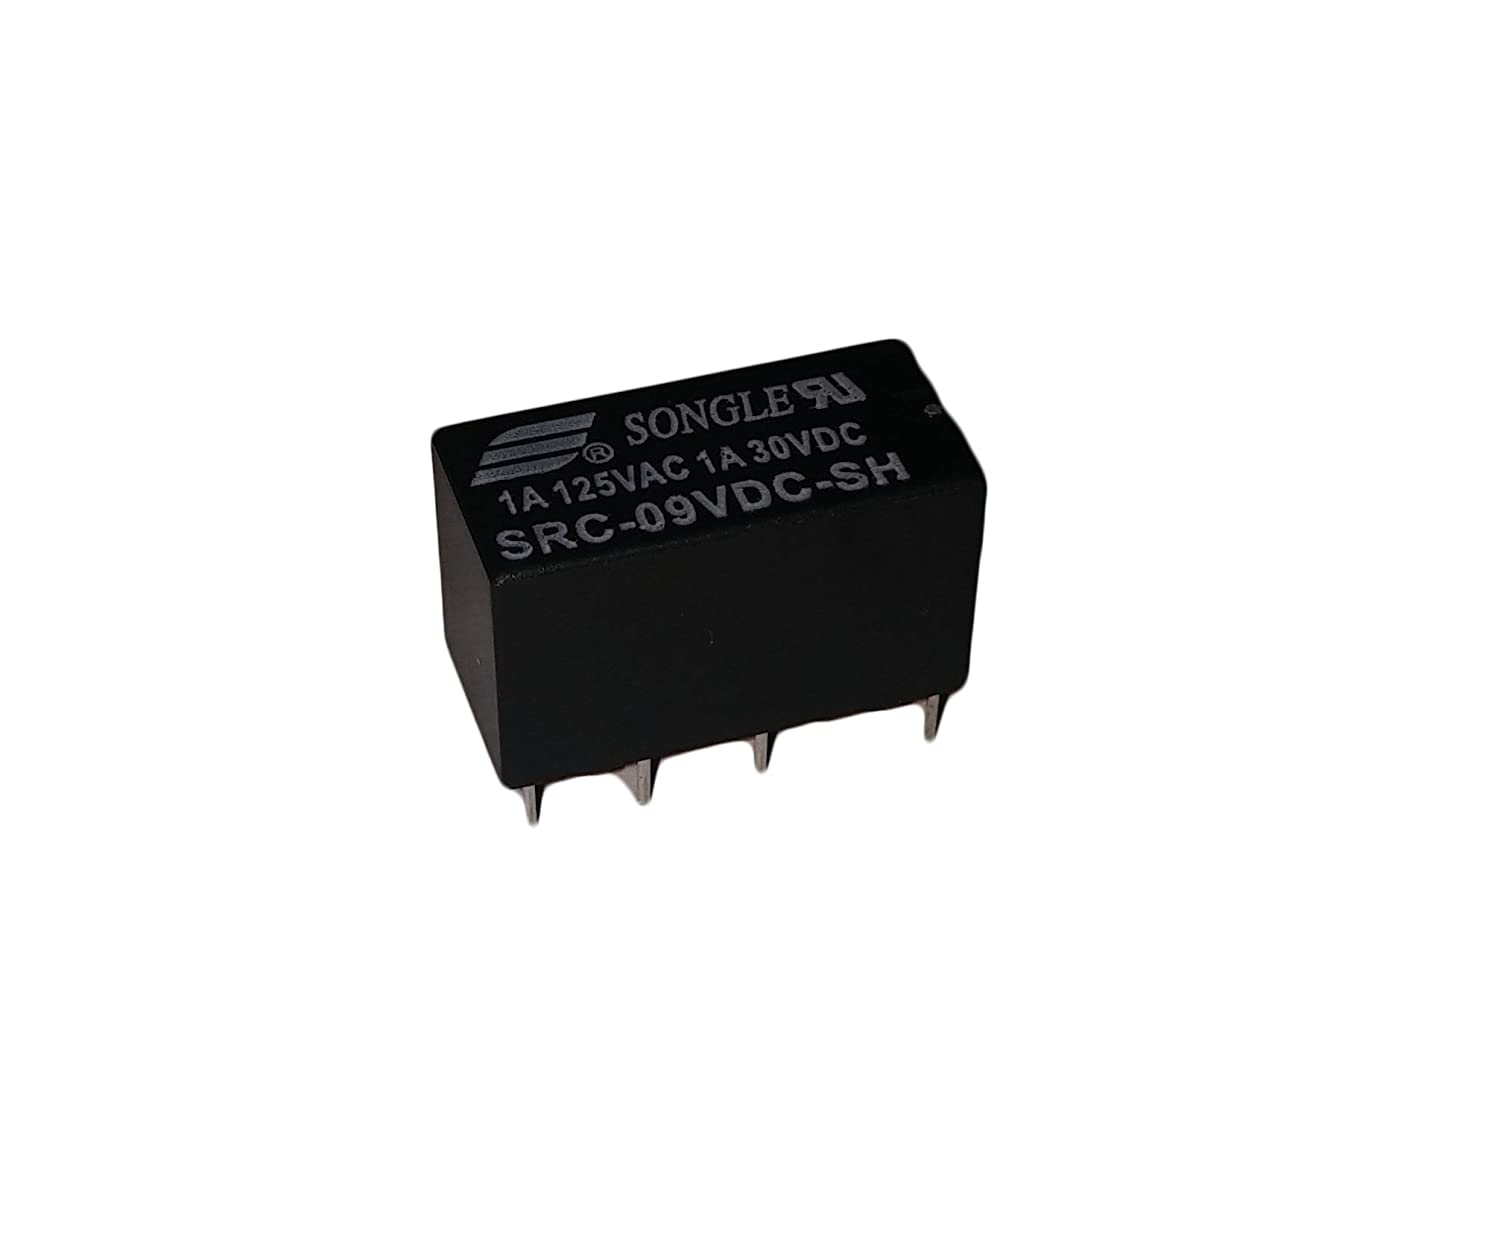 Protechtrader 9vdc 9 Volt Dc Relay Dpdt Pcb 8 Pin The Npn Can Be Just About Any General Purpose 2n2222 Bc337 Etc Mount Non Latching Polarized Electronic Low Signal High Sensitivity Module For